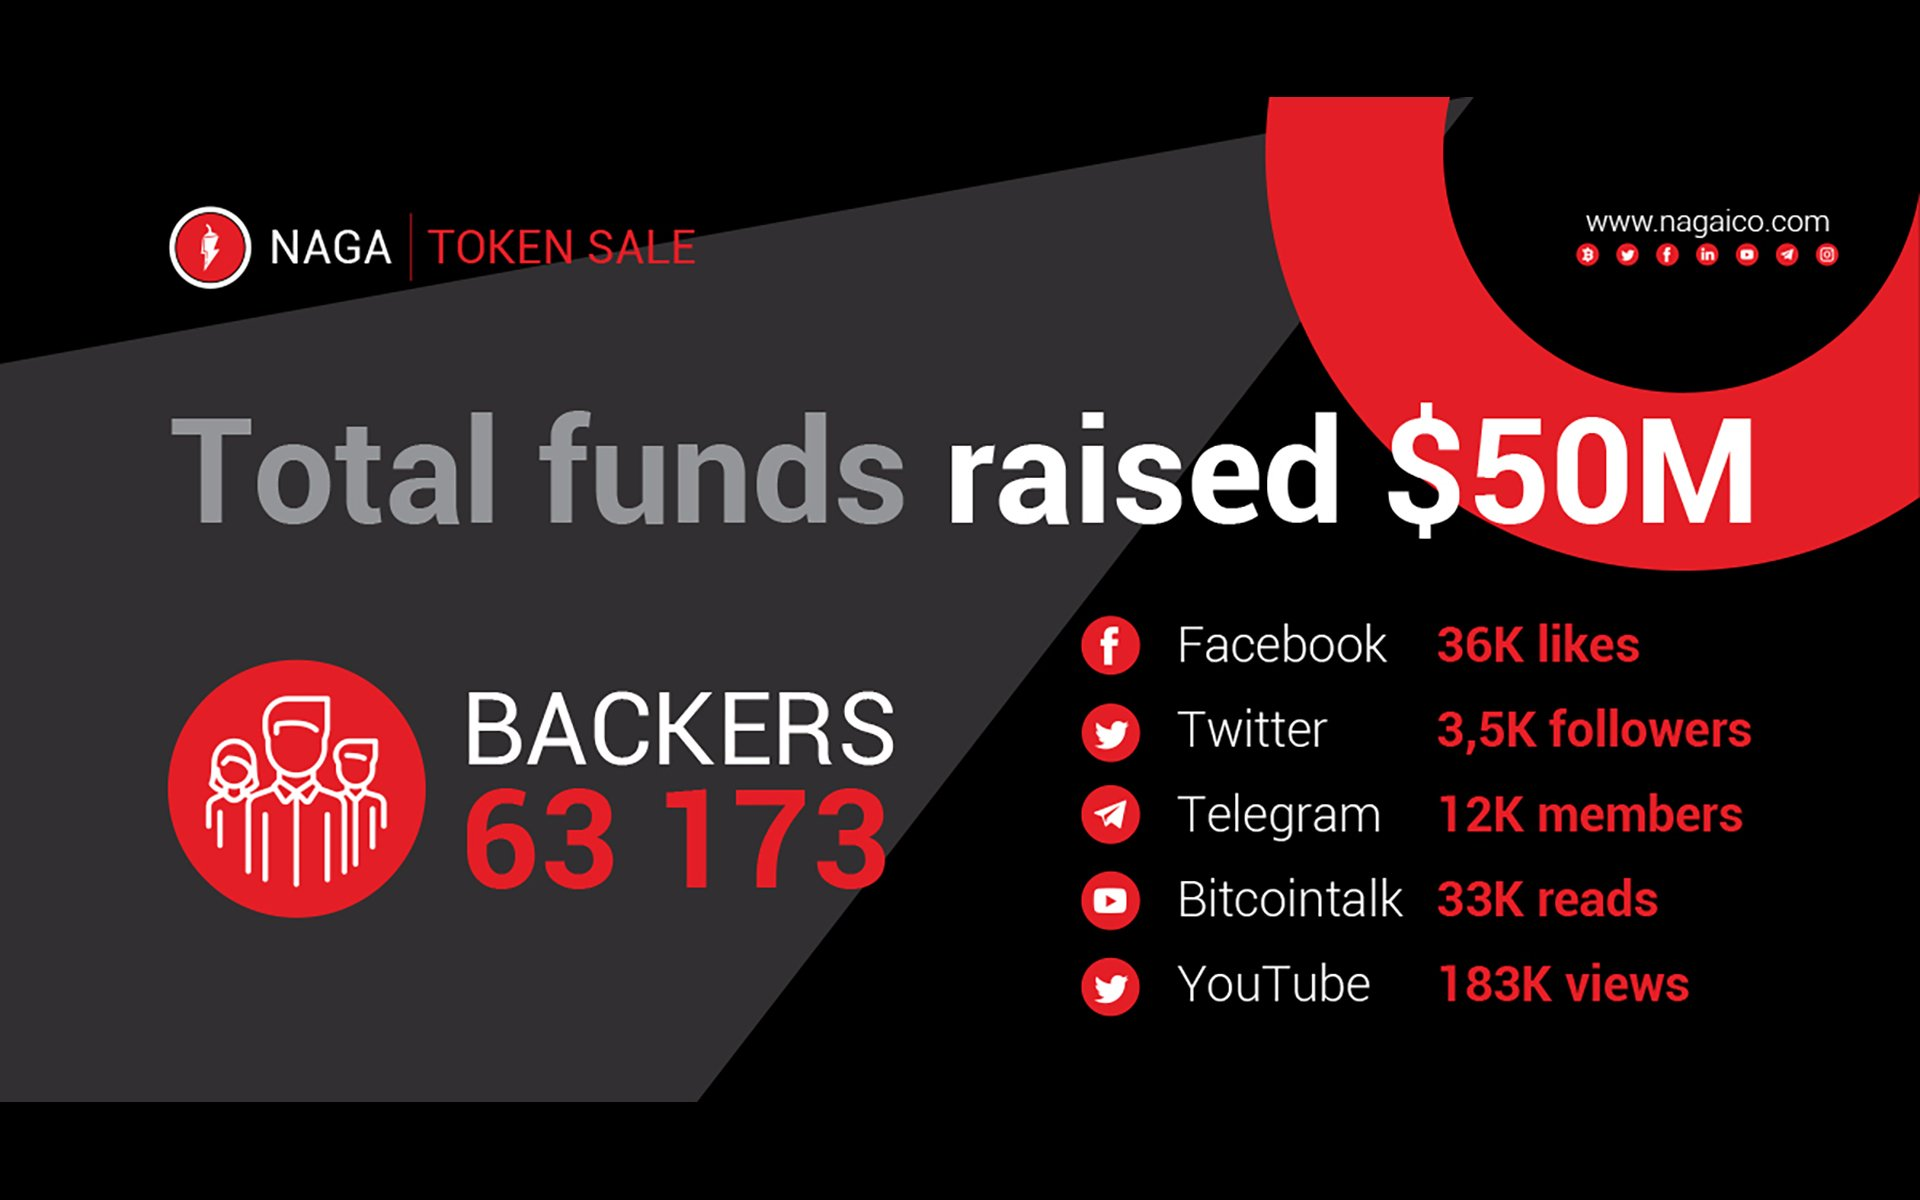 The NAGA Token Sale Has Ended with a Huge Success